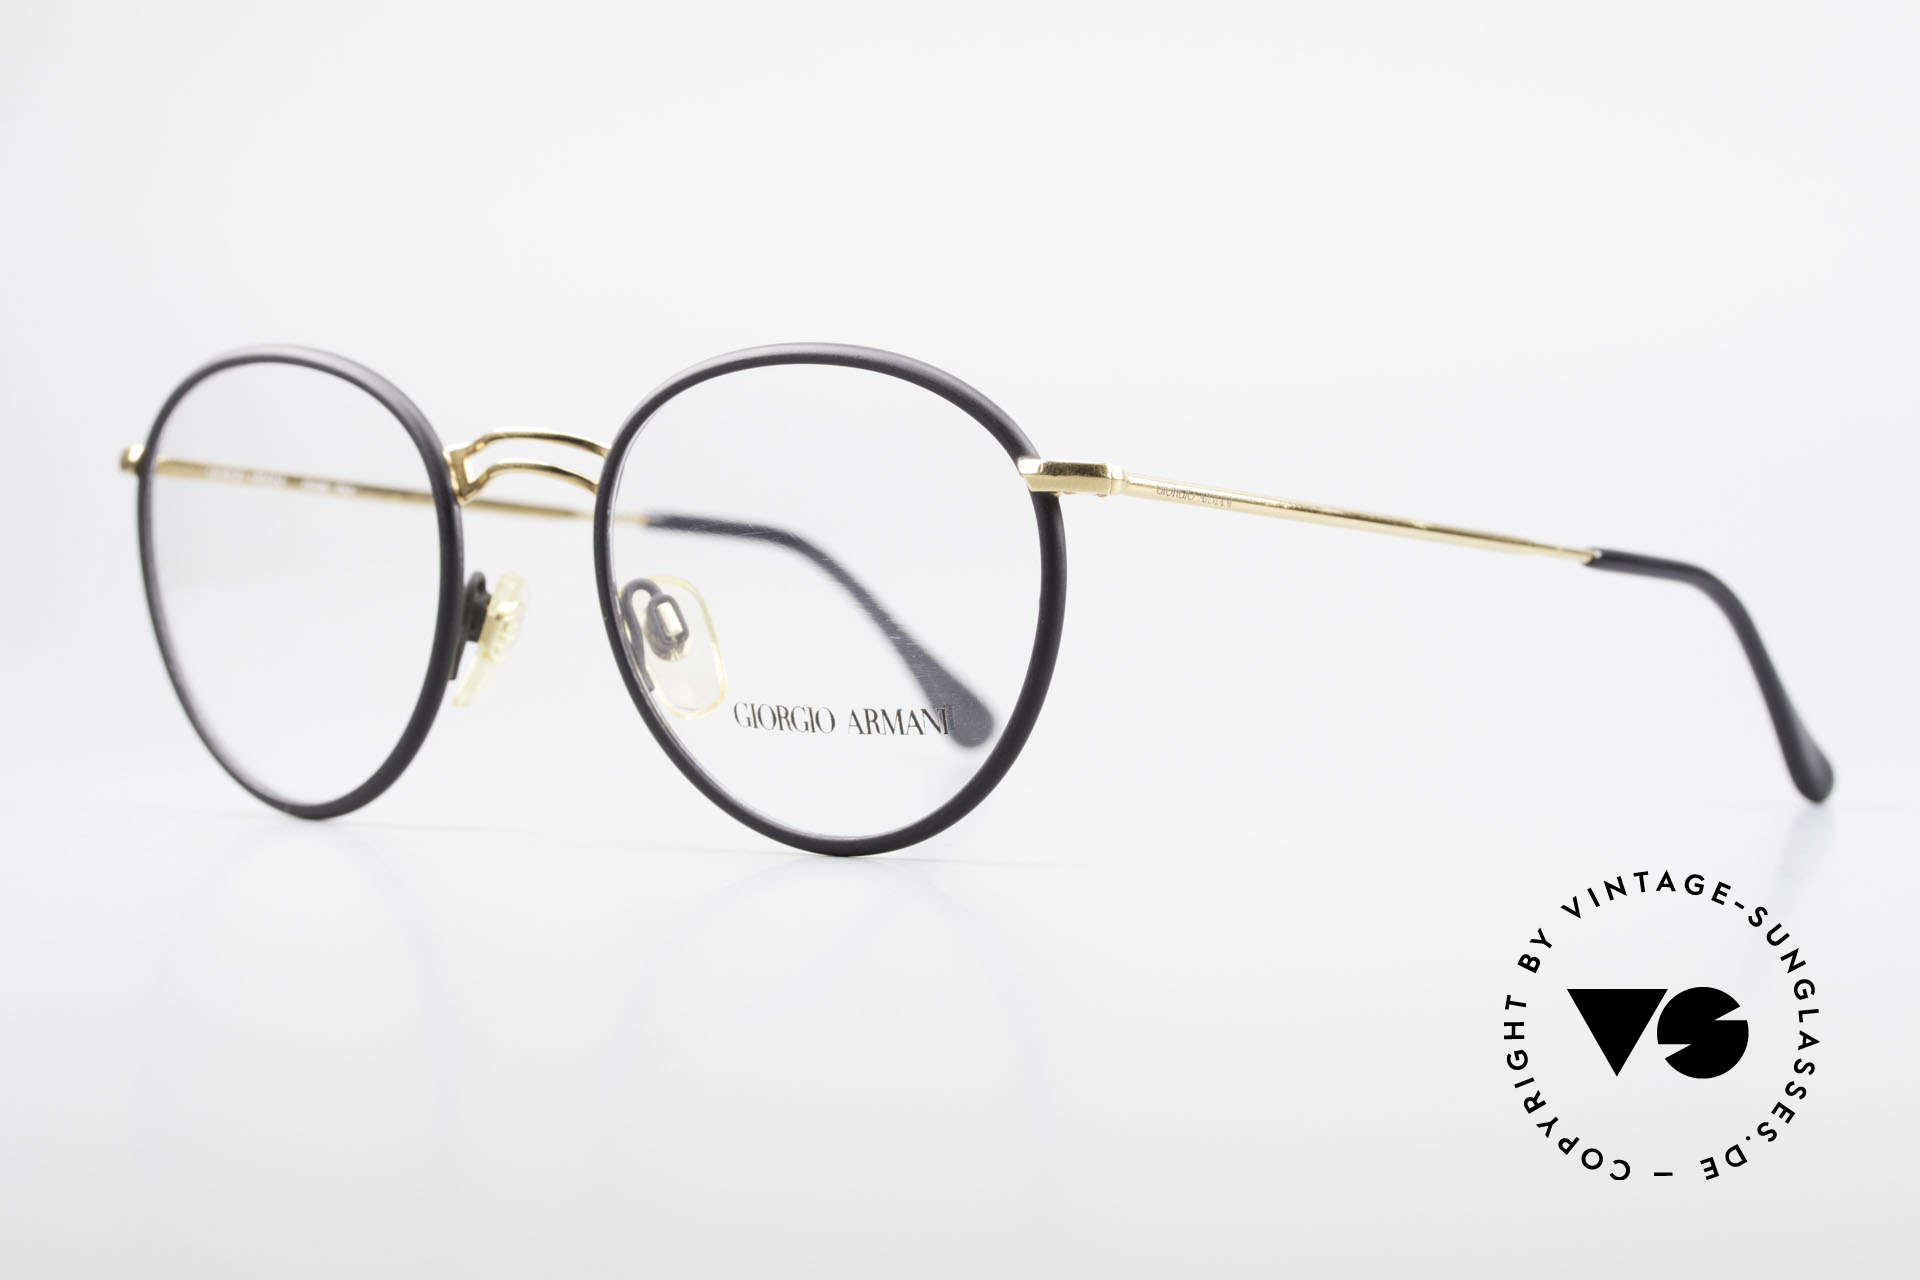 Giorgio Armani 152 Classic Round Vintage Frame, true 'gentlemen eyeglass-frame' in top-notch quality, Made for Men